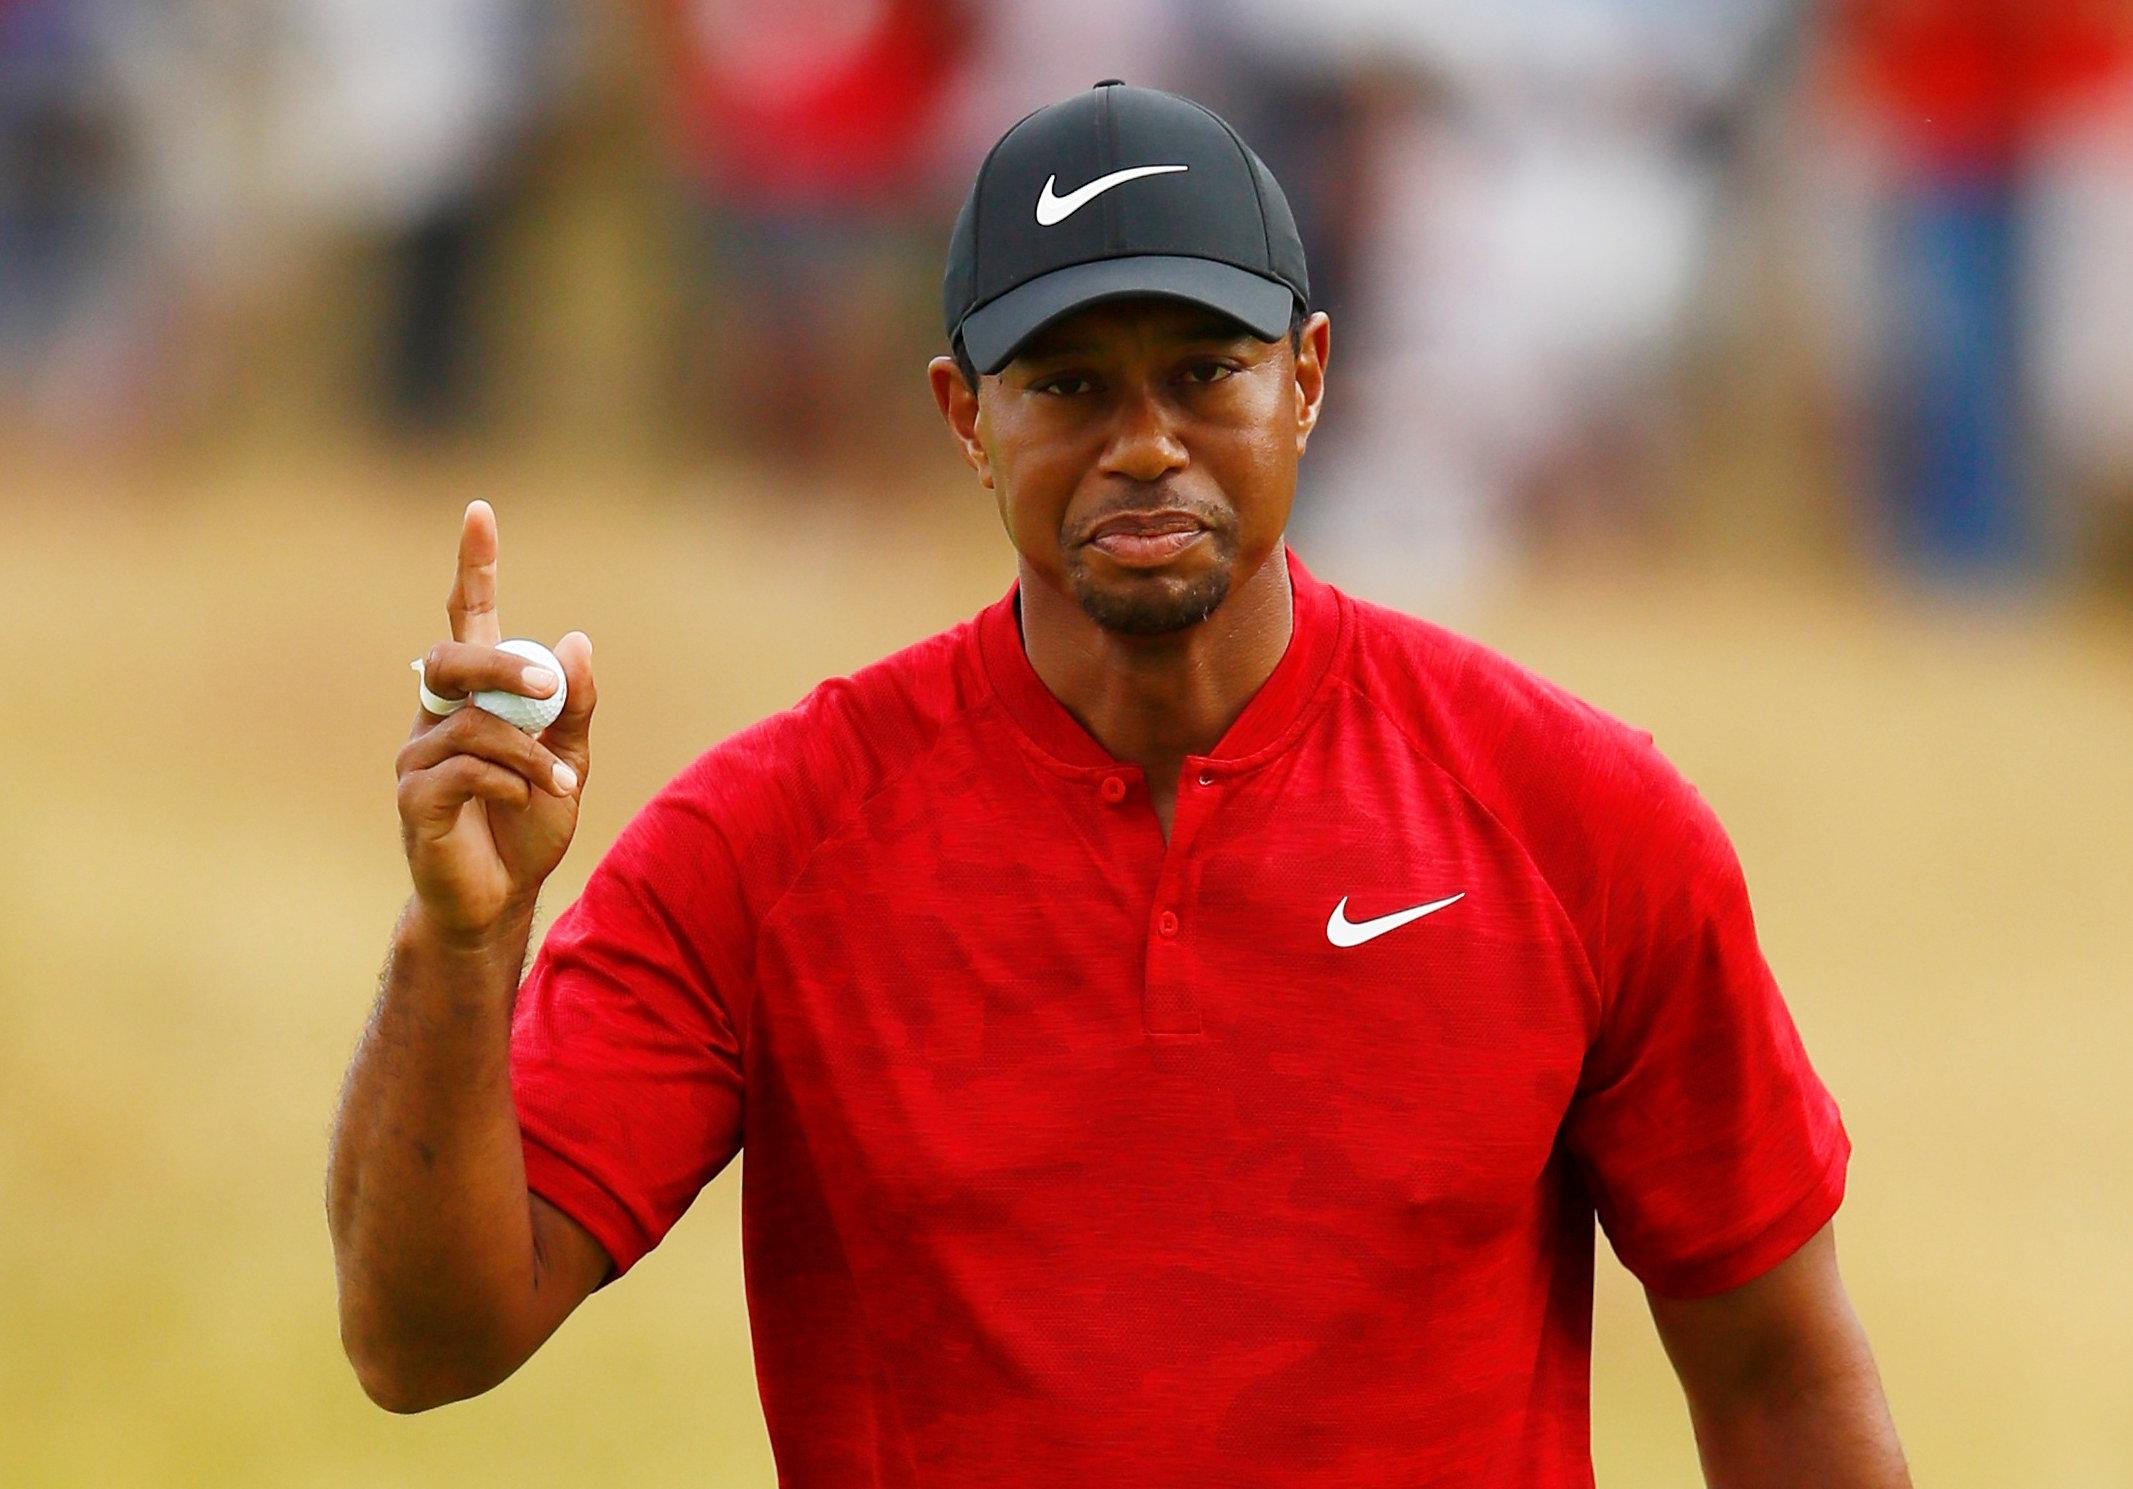 Tiger Woods has hit out at a heckler after he attempted to distract him at the 18th hole